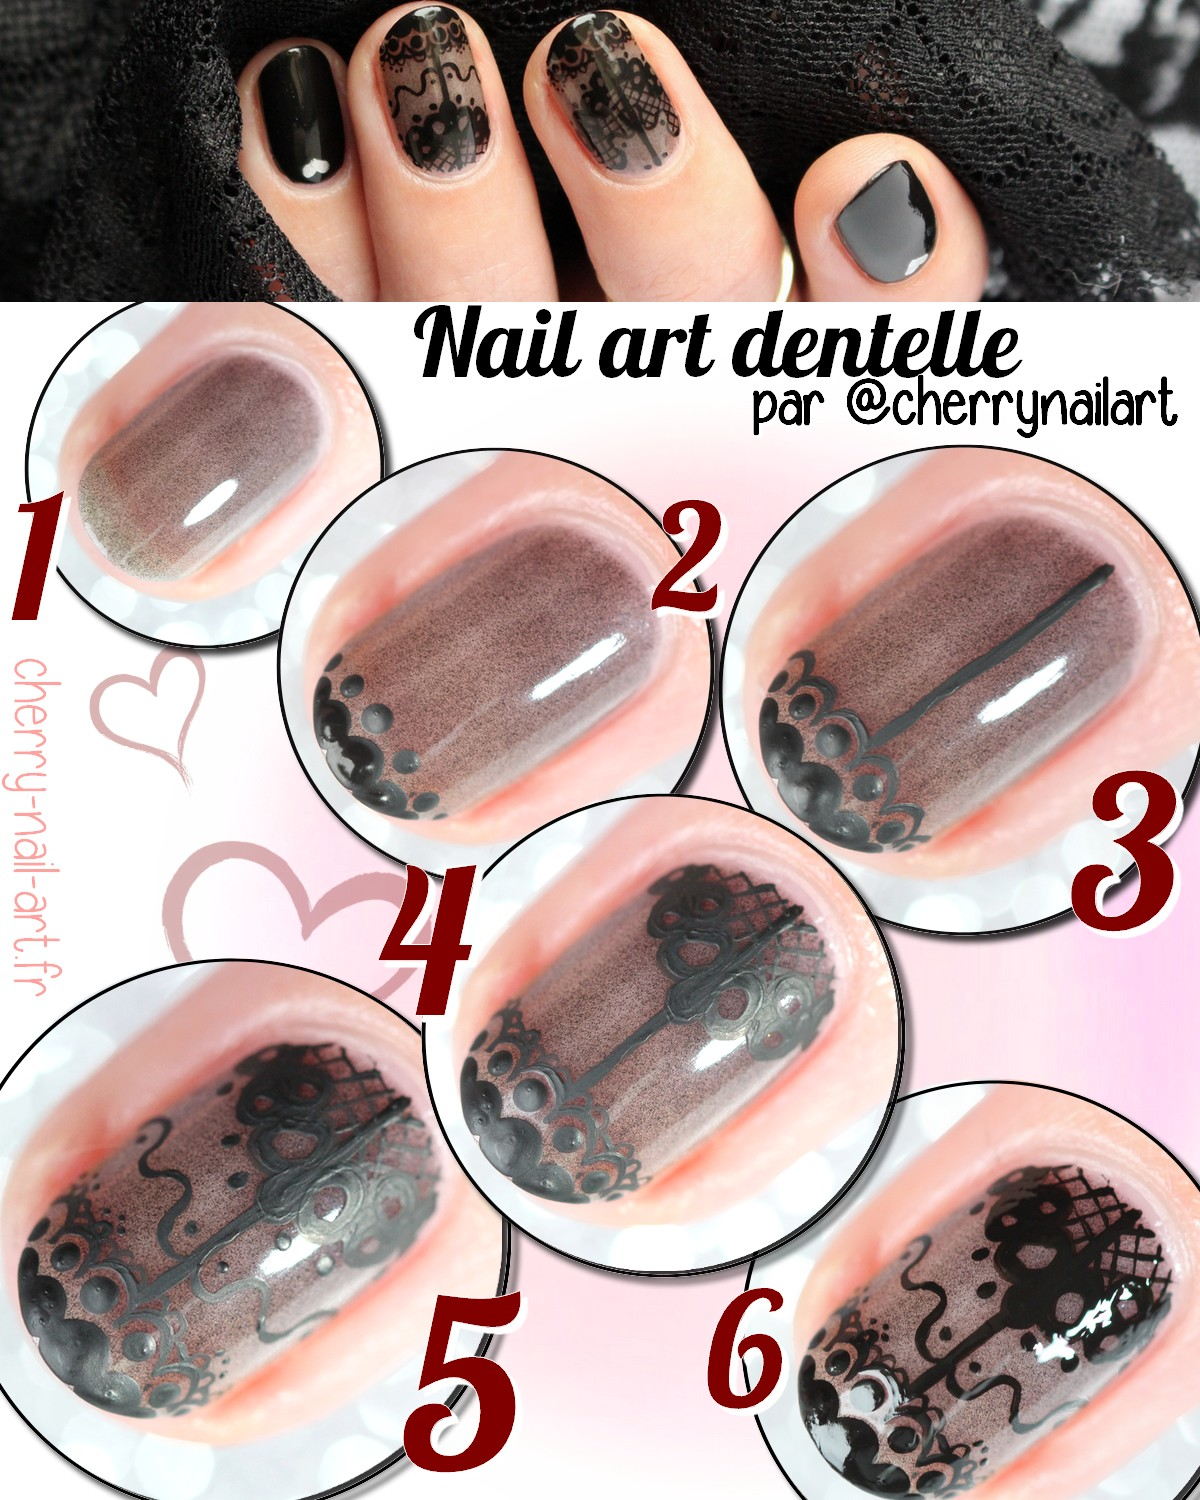 tuto-photo-pas-a-pas-nail-art-dentelle-saint-valentin